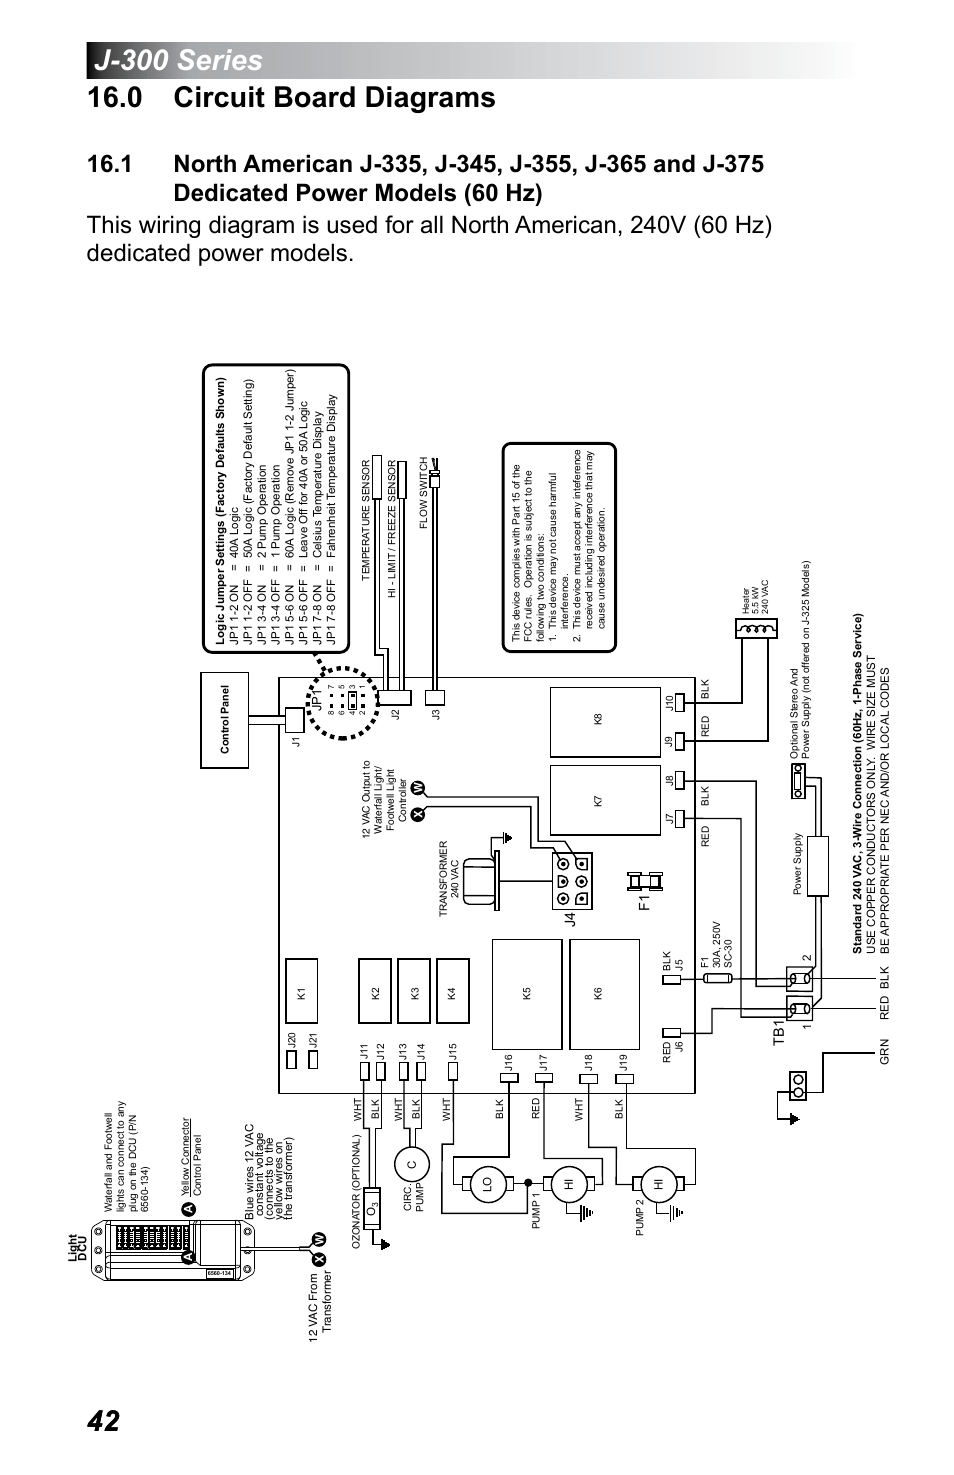 hight resolution of 0 circuit board diagrams dedicated power models 60 hz jacuzzi j